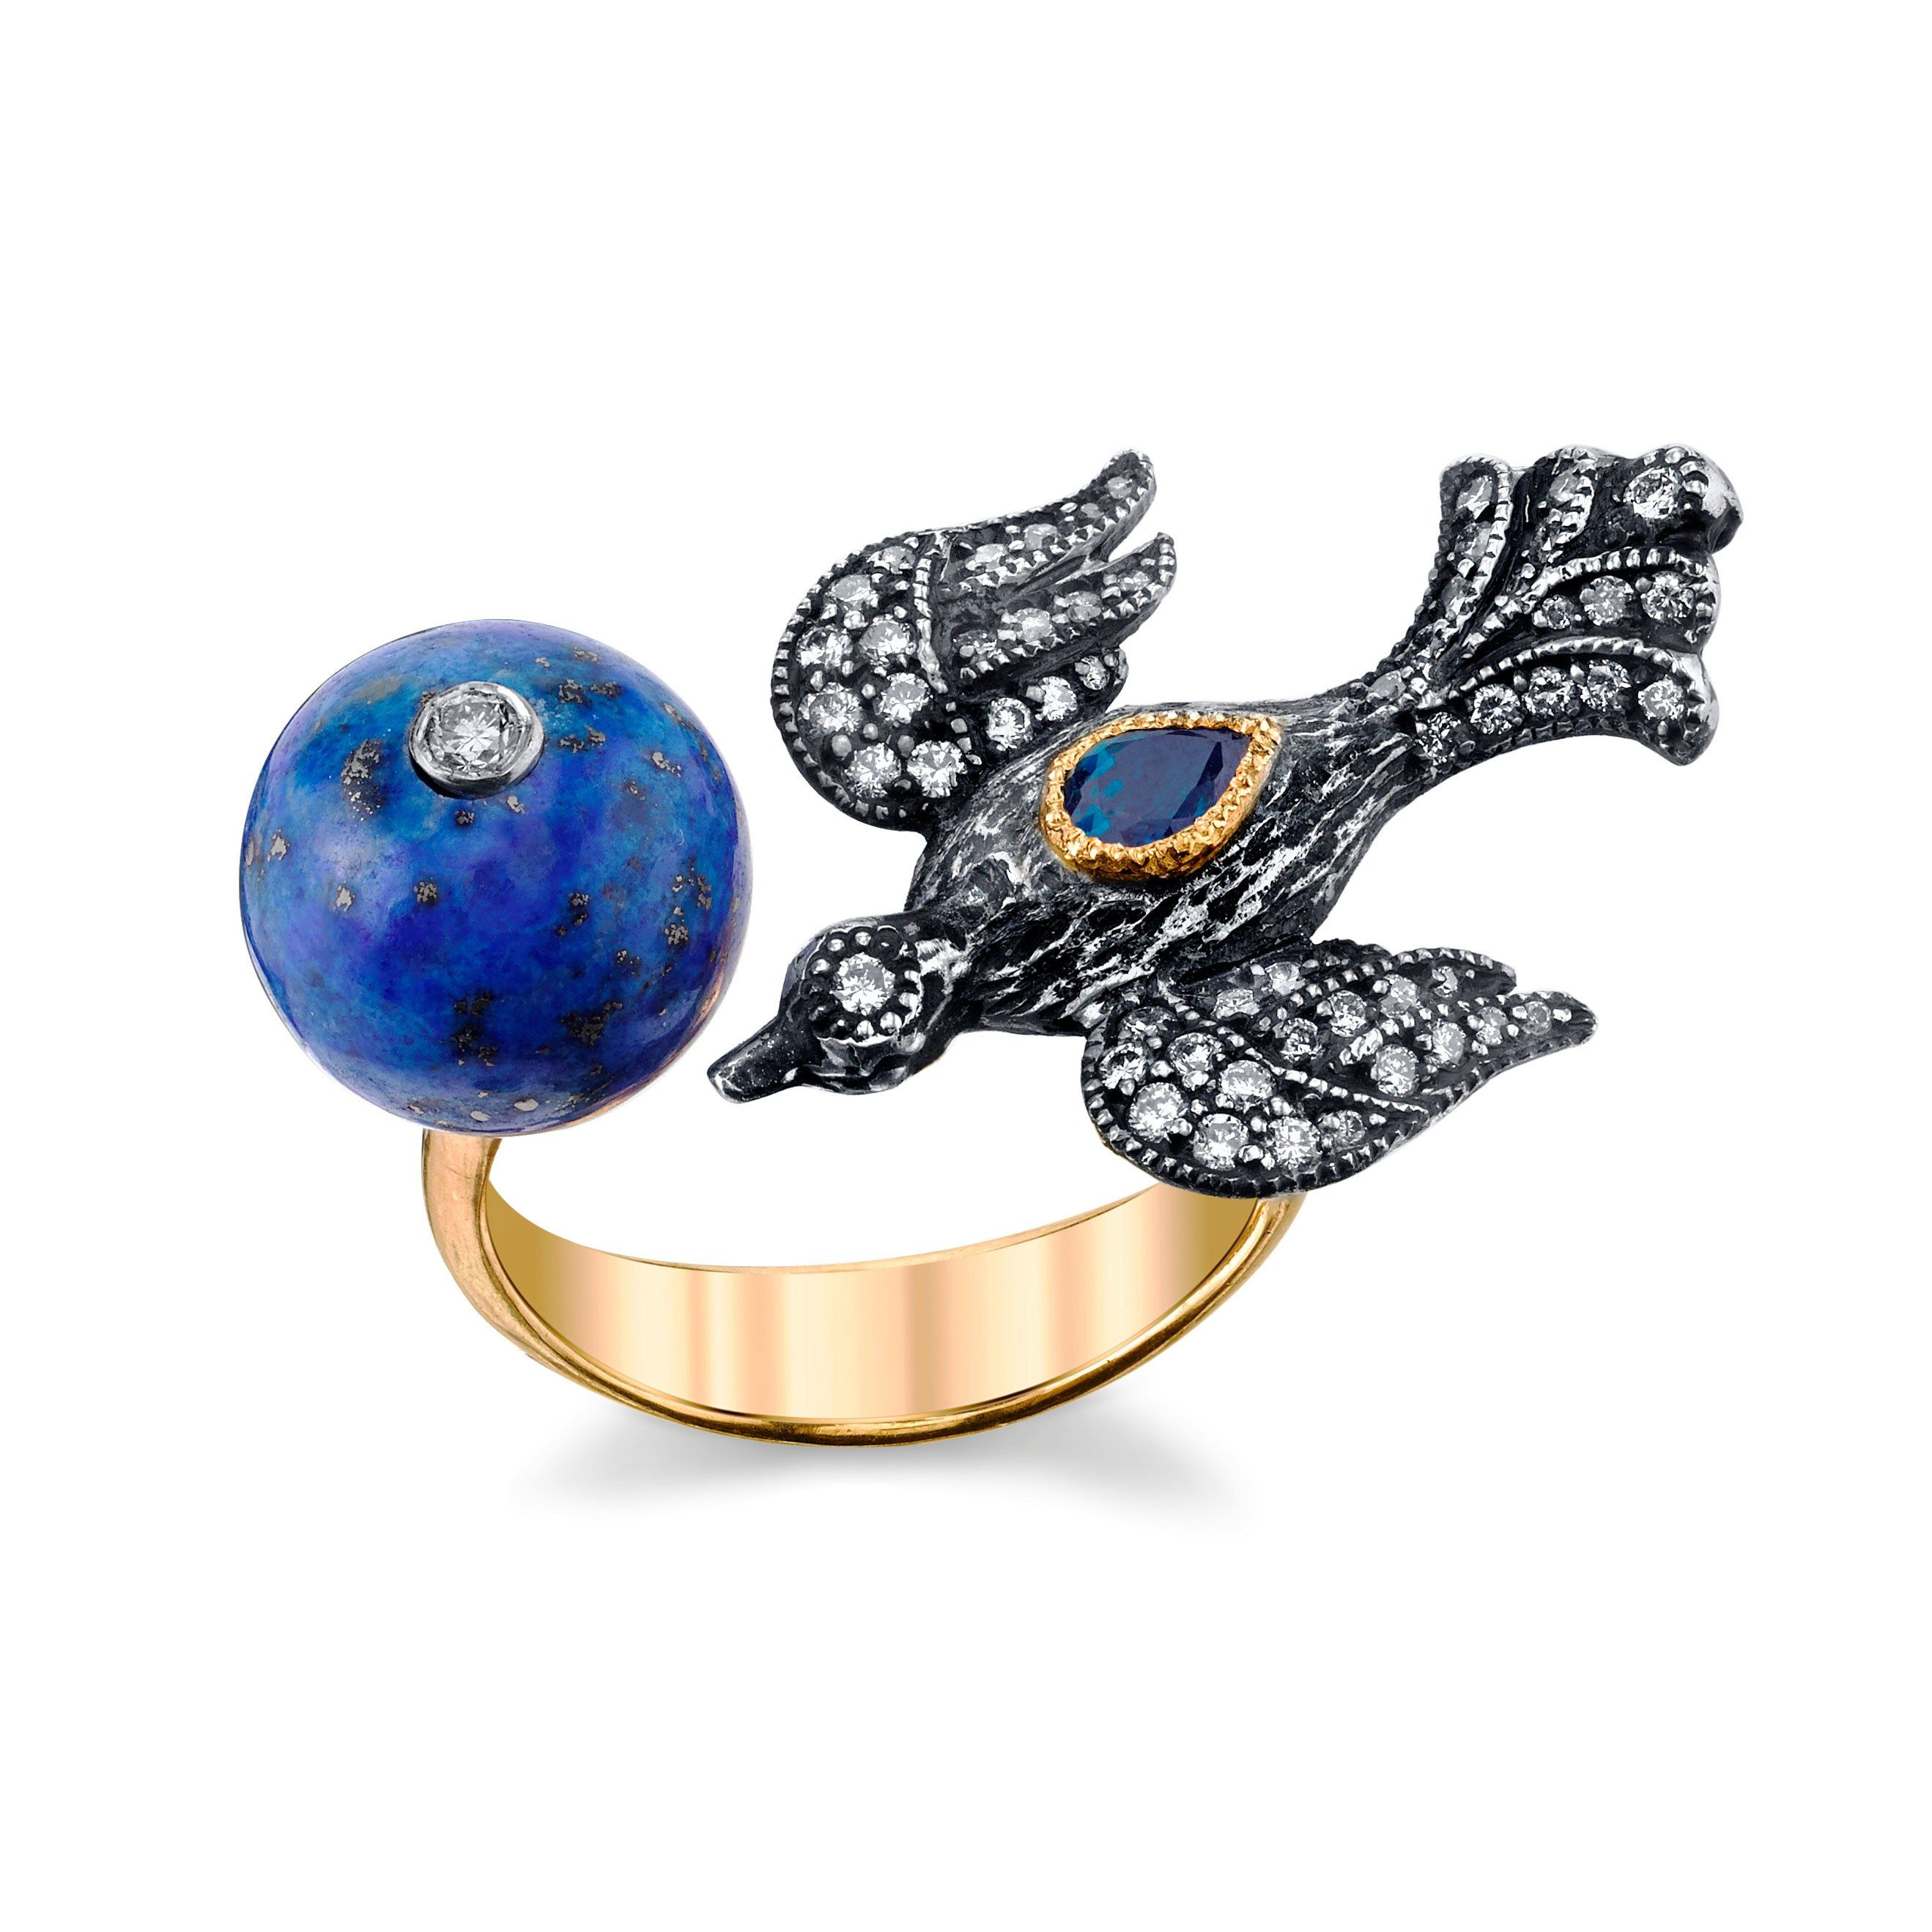 6 New Fine Jewelry Designers to Fancy From the Couture Trade Show in